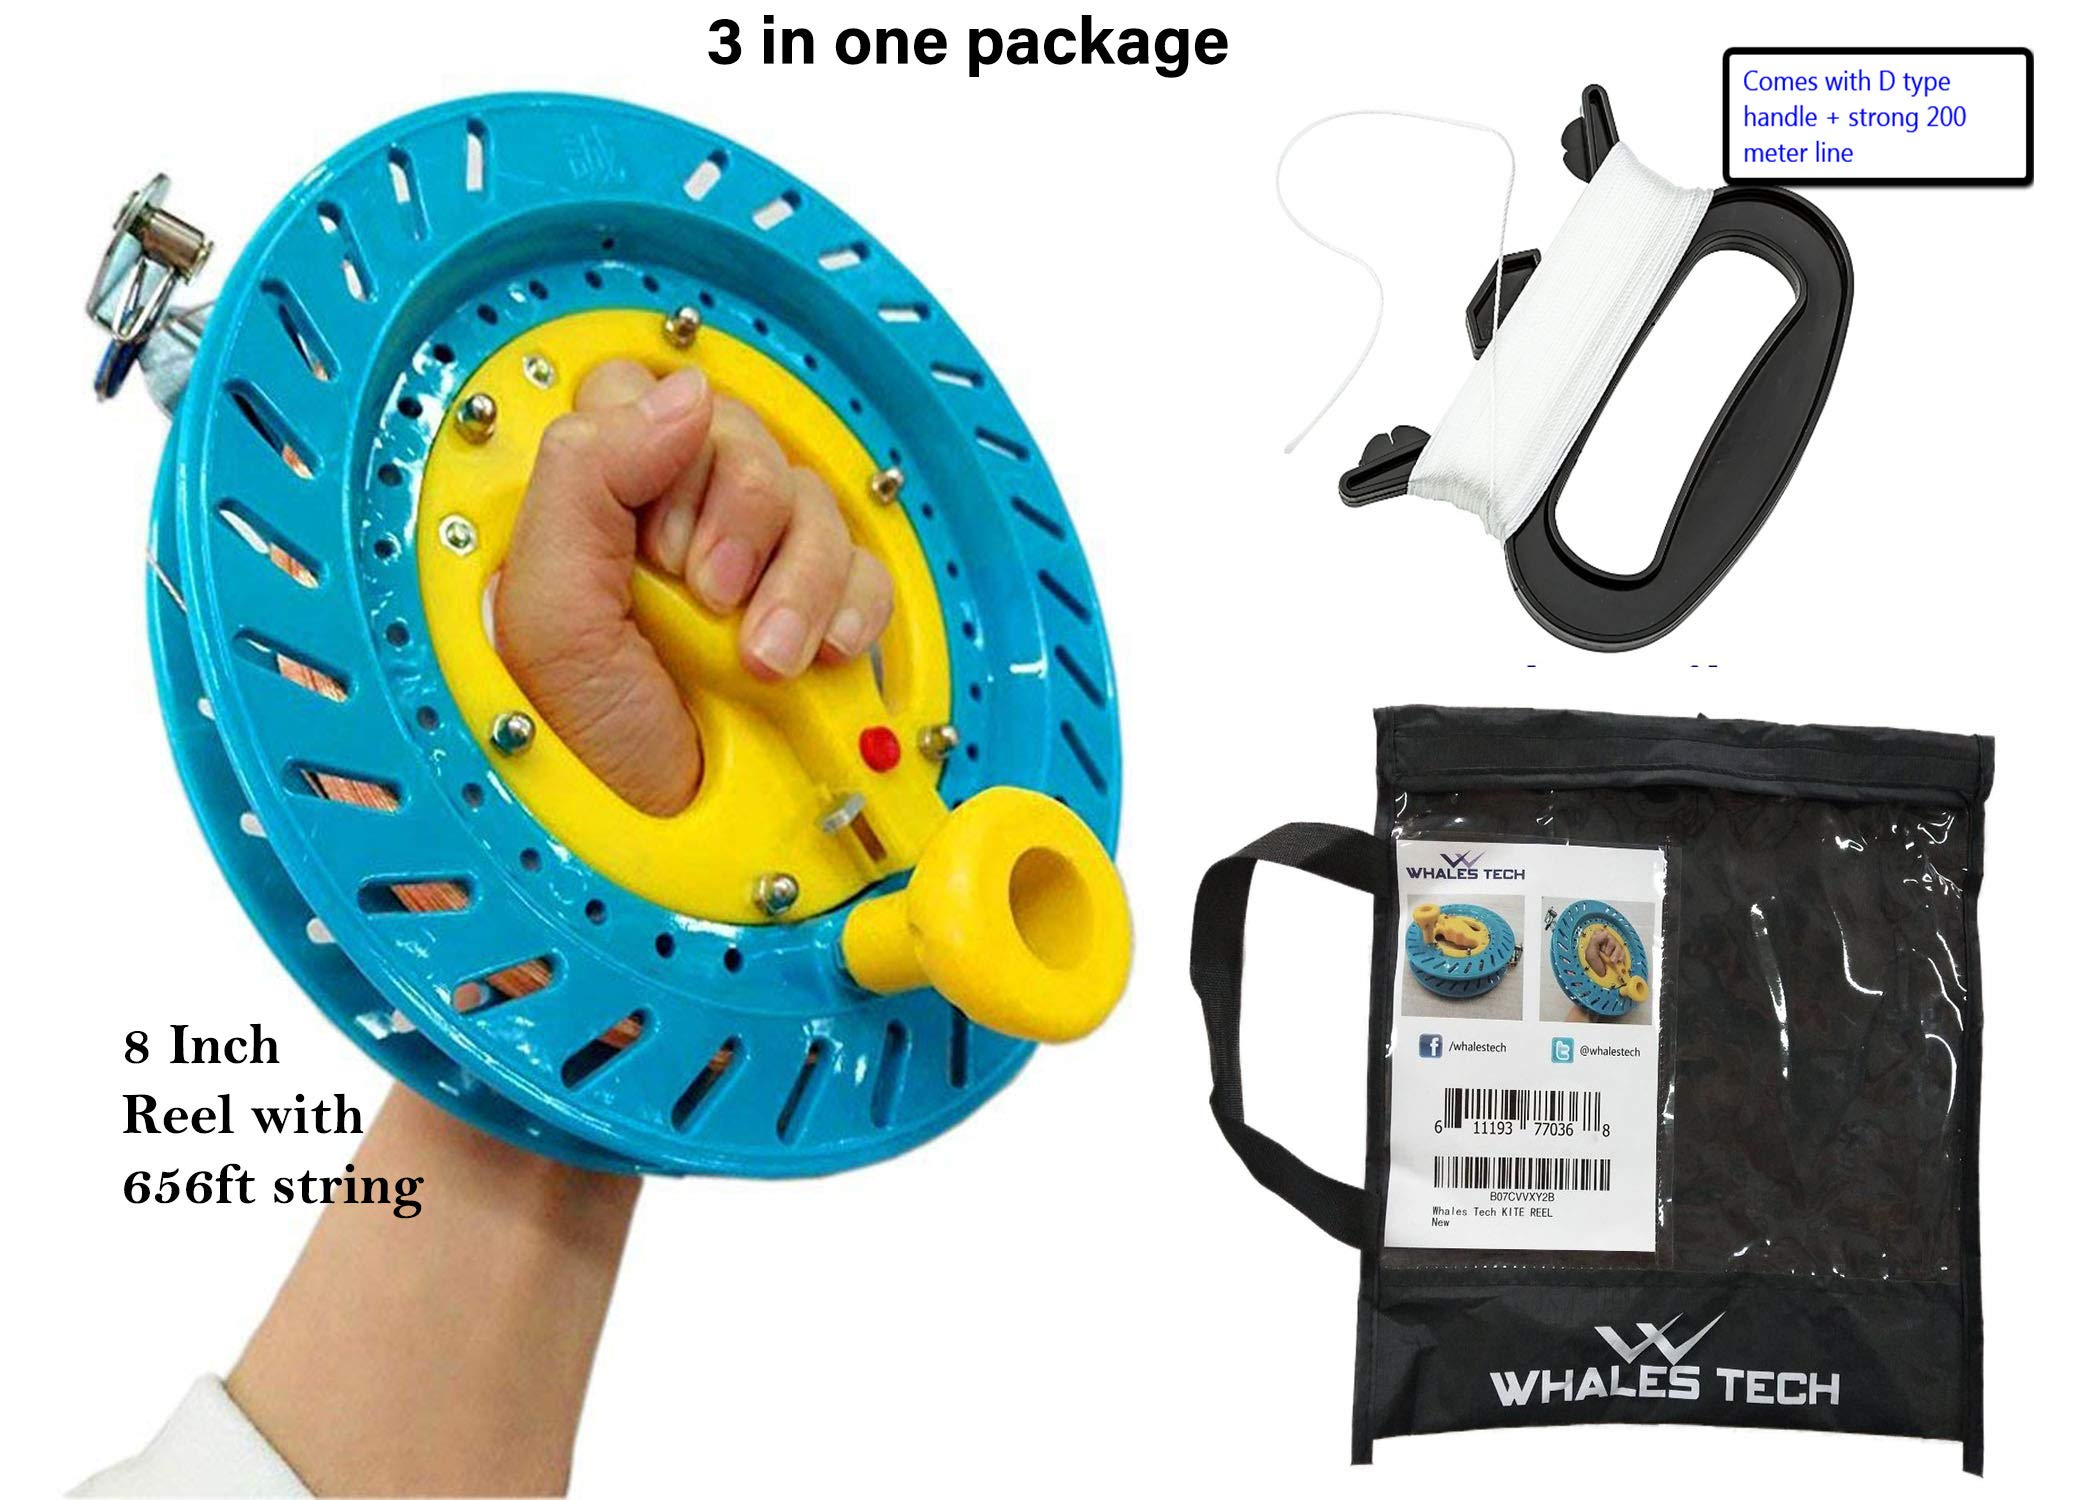 Whales Tech Kite Reel String Winder Blue Steel Lockable Handle Outdoor Kite Strong Flying String Line Smooth Rotation Ball Bearing Adult Kids 3 Pack